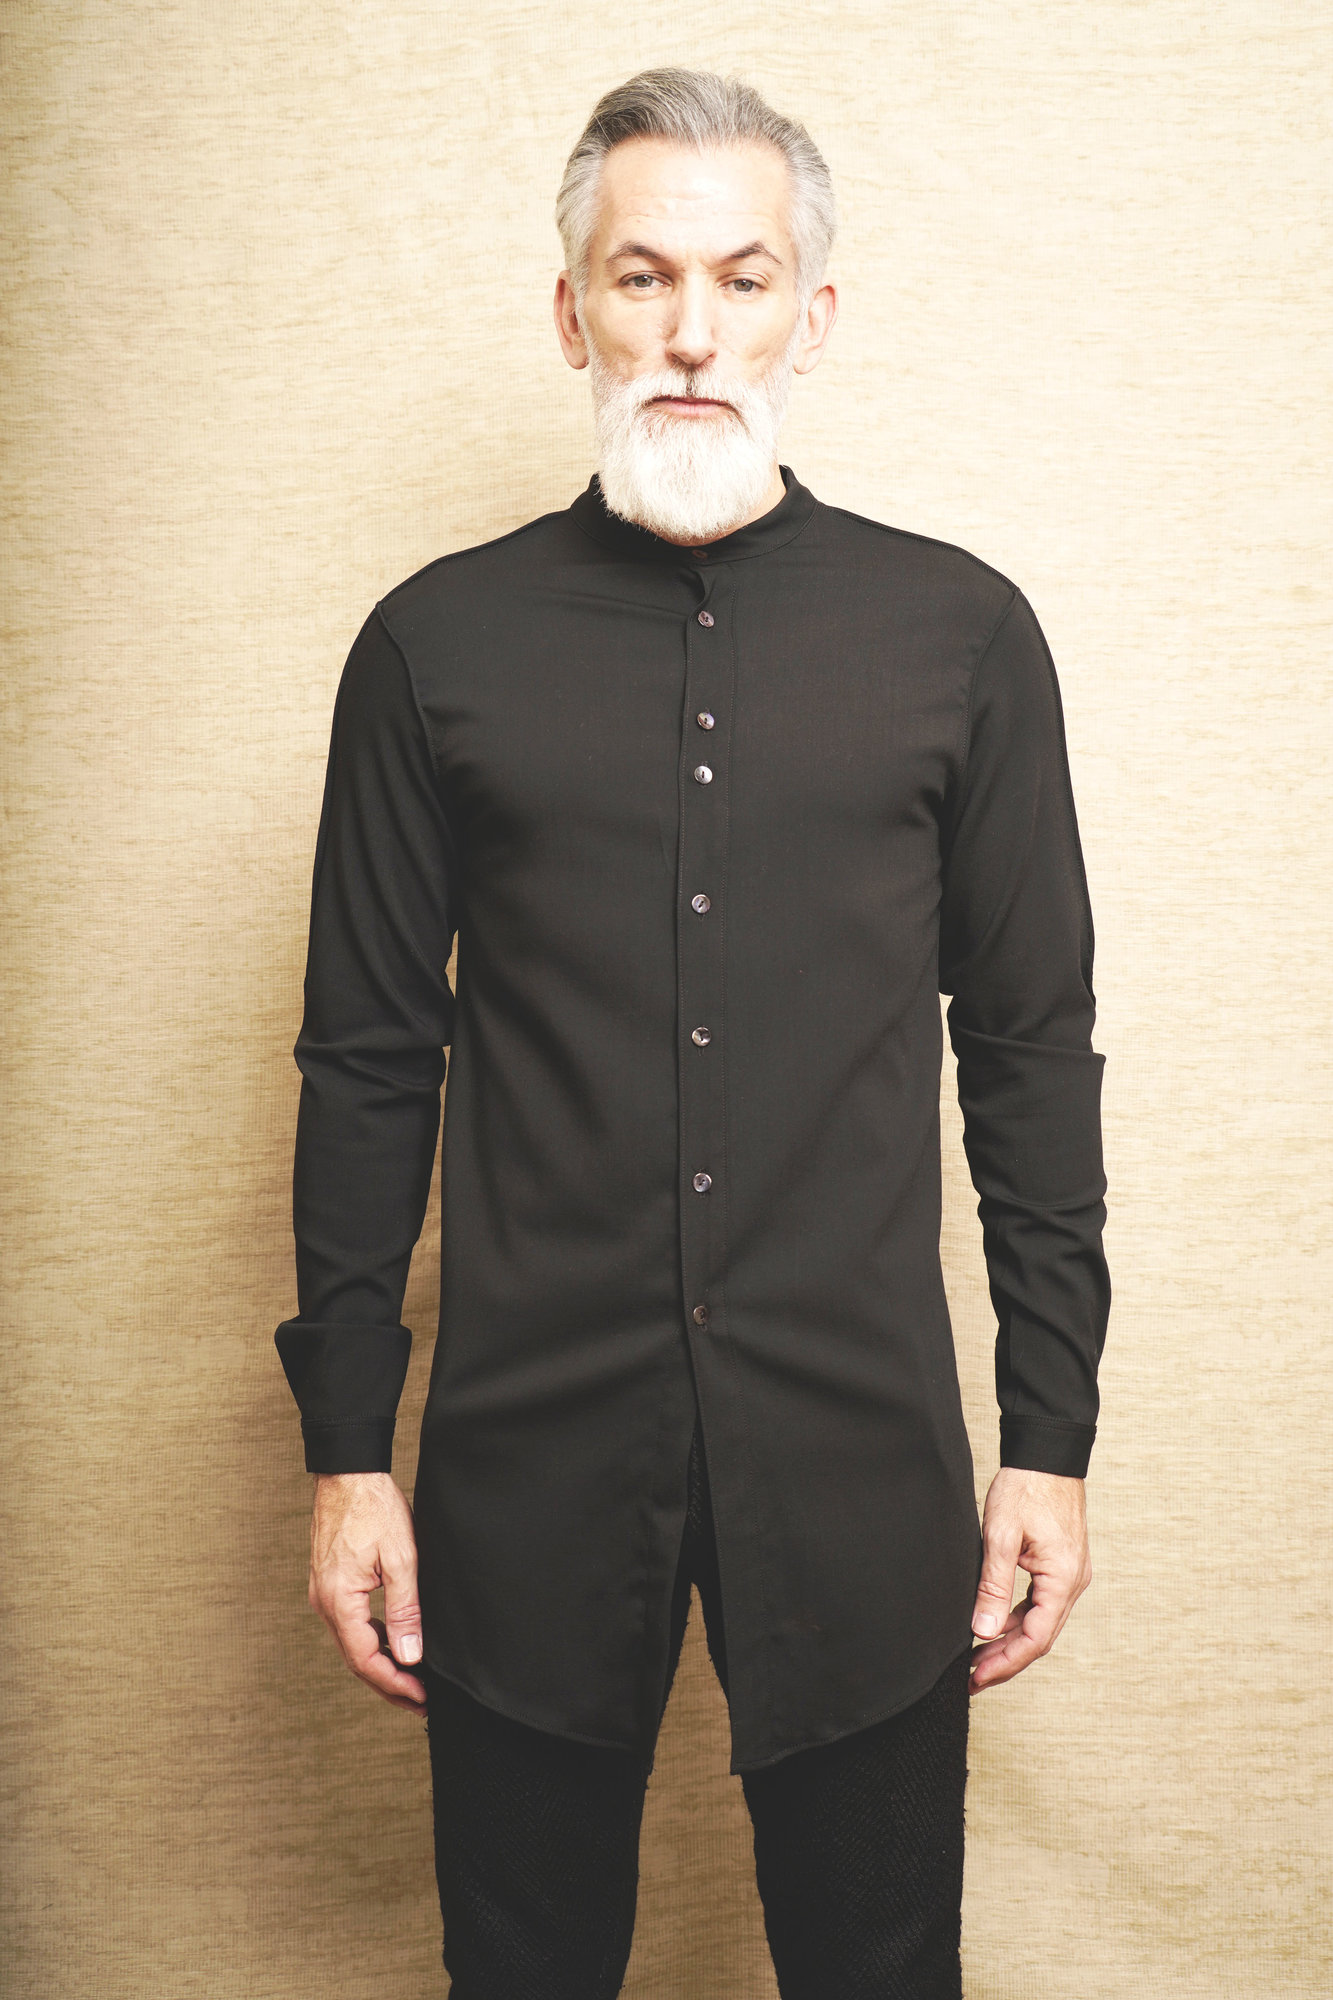 Empedocles long shirt - black_4.JPG